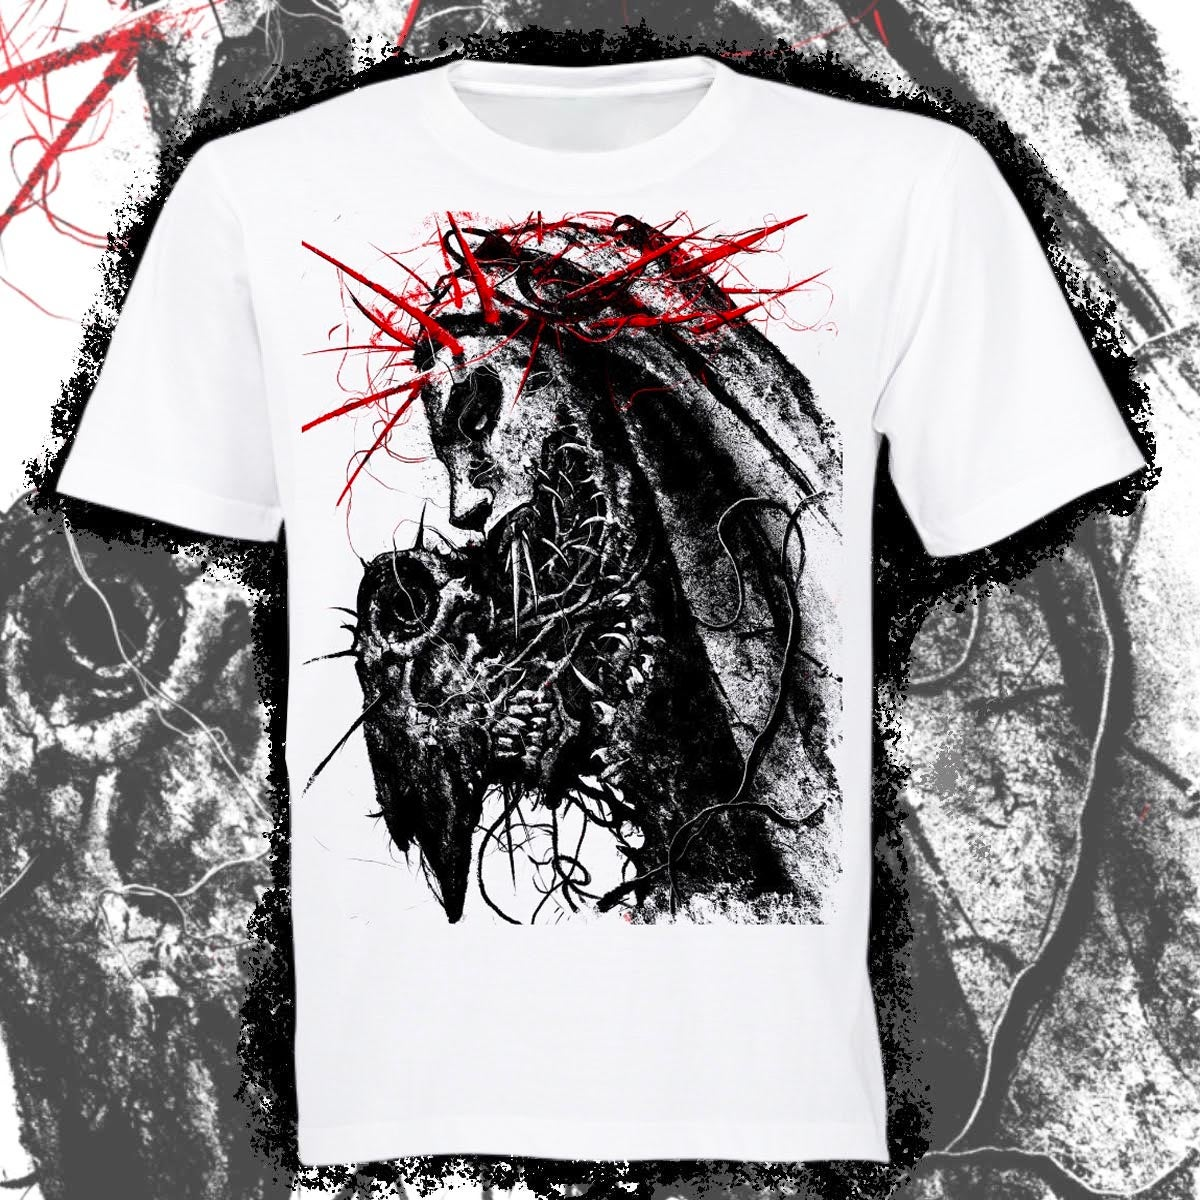 RED THORNS T-SHIRT